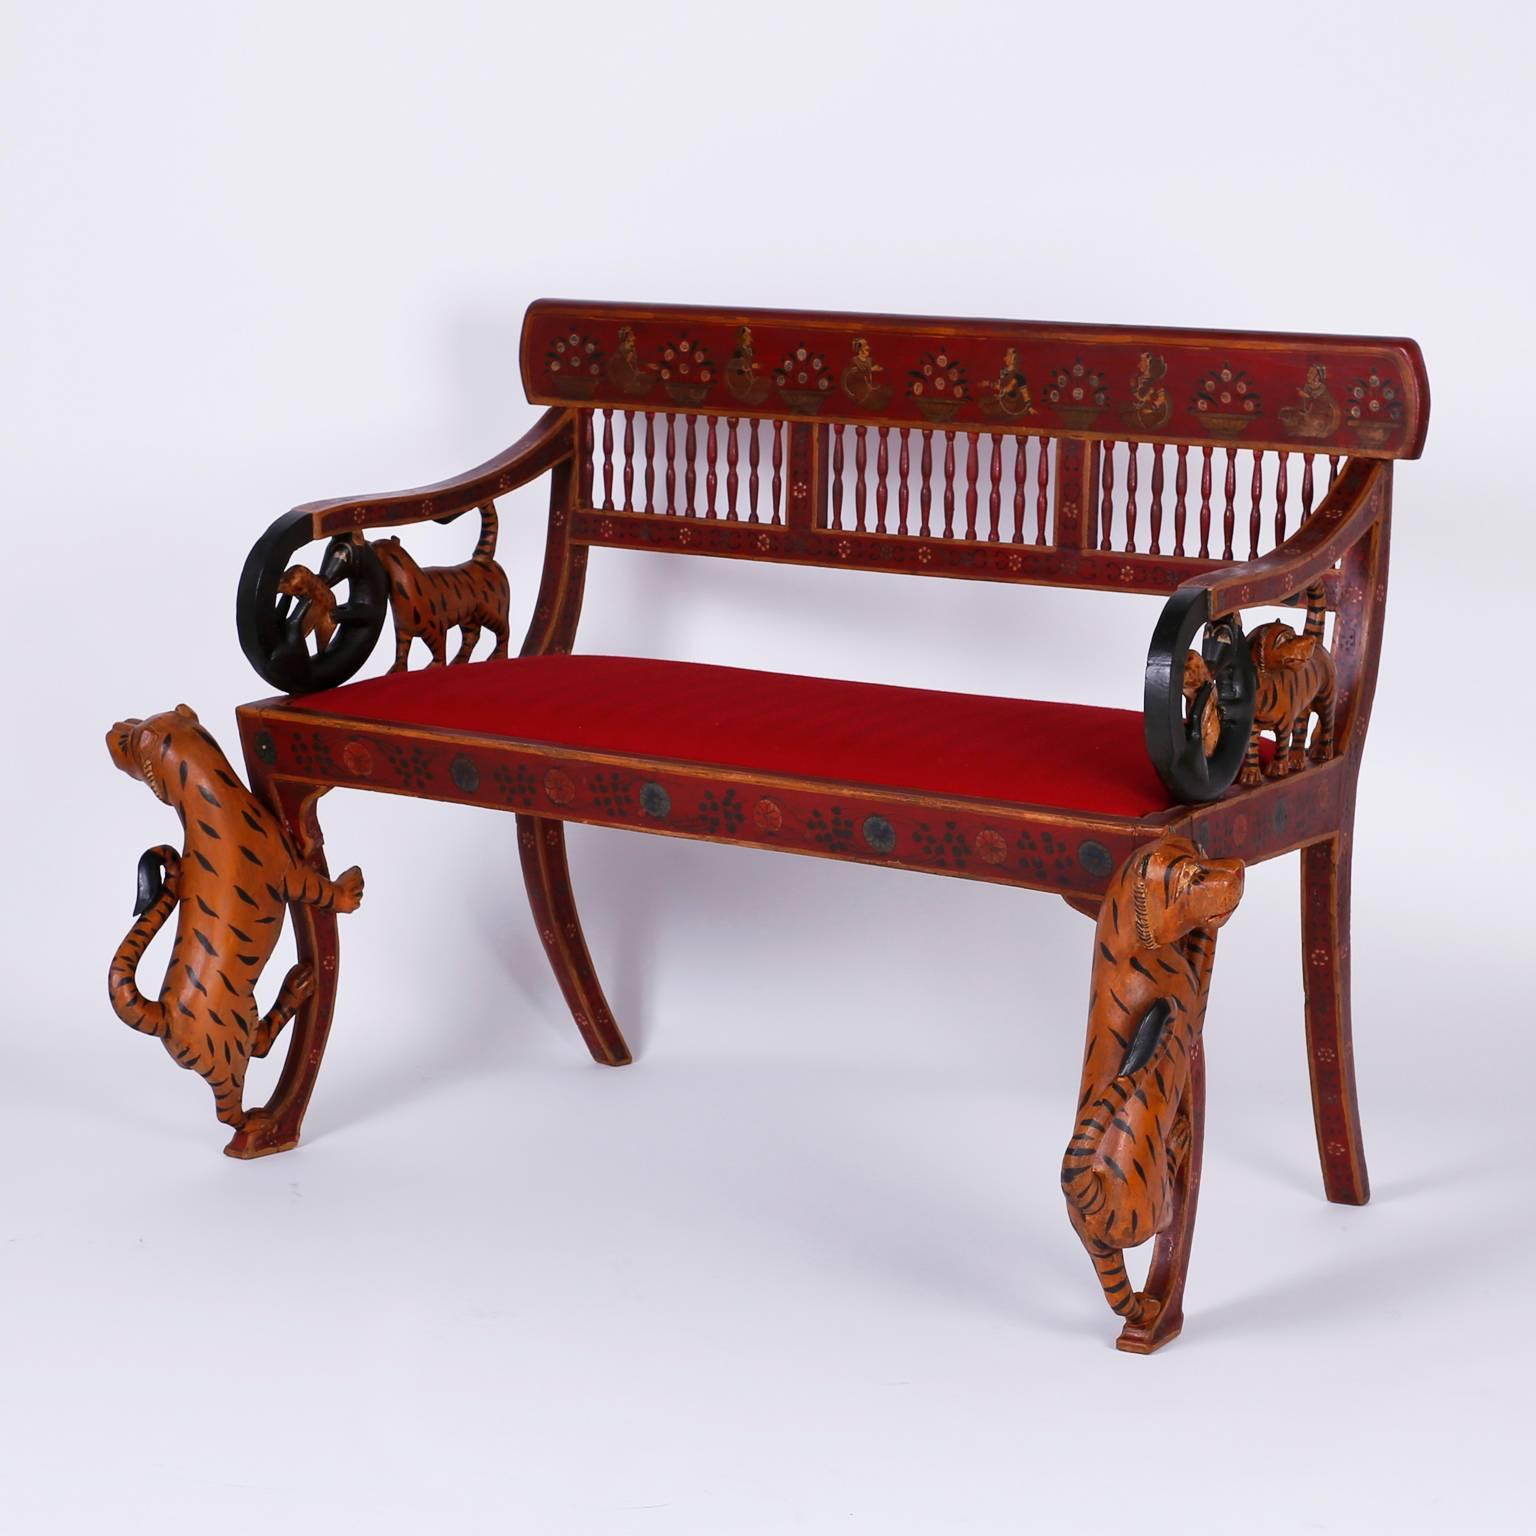 Rare Indian Carved Three Piece Salon Suite With A Bench And Two Chairs For  Sale At 1stdibs